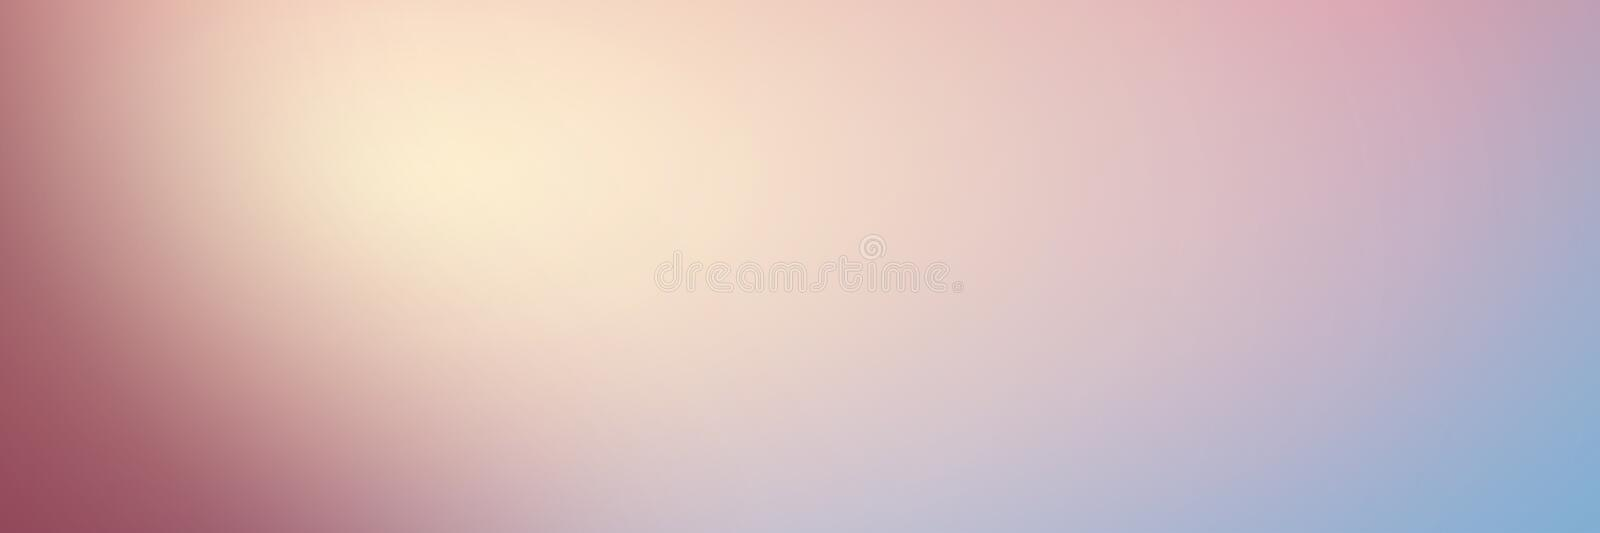 Smooth gradient background with pastel pink and blue colors. Lon stock photos